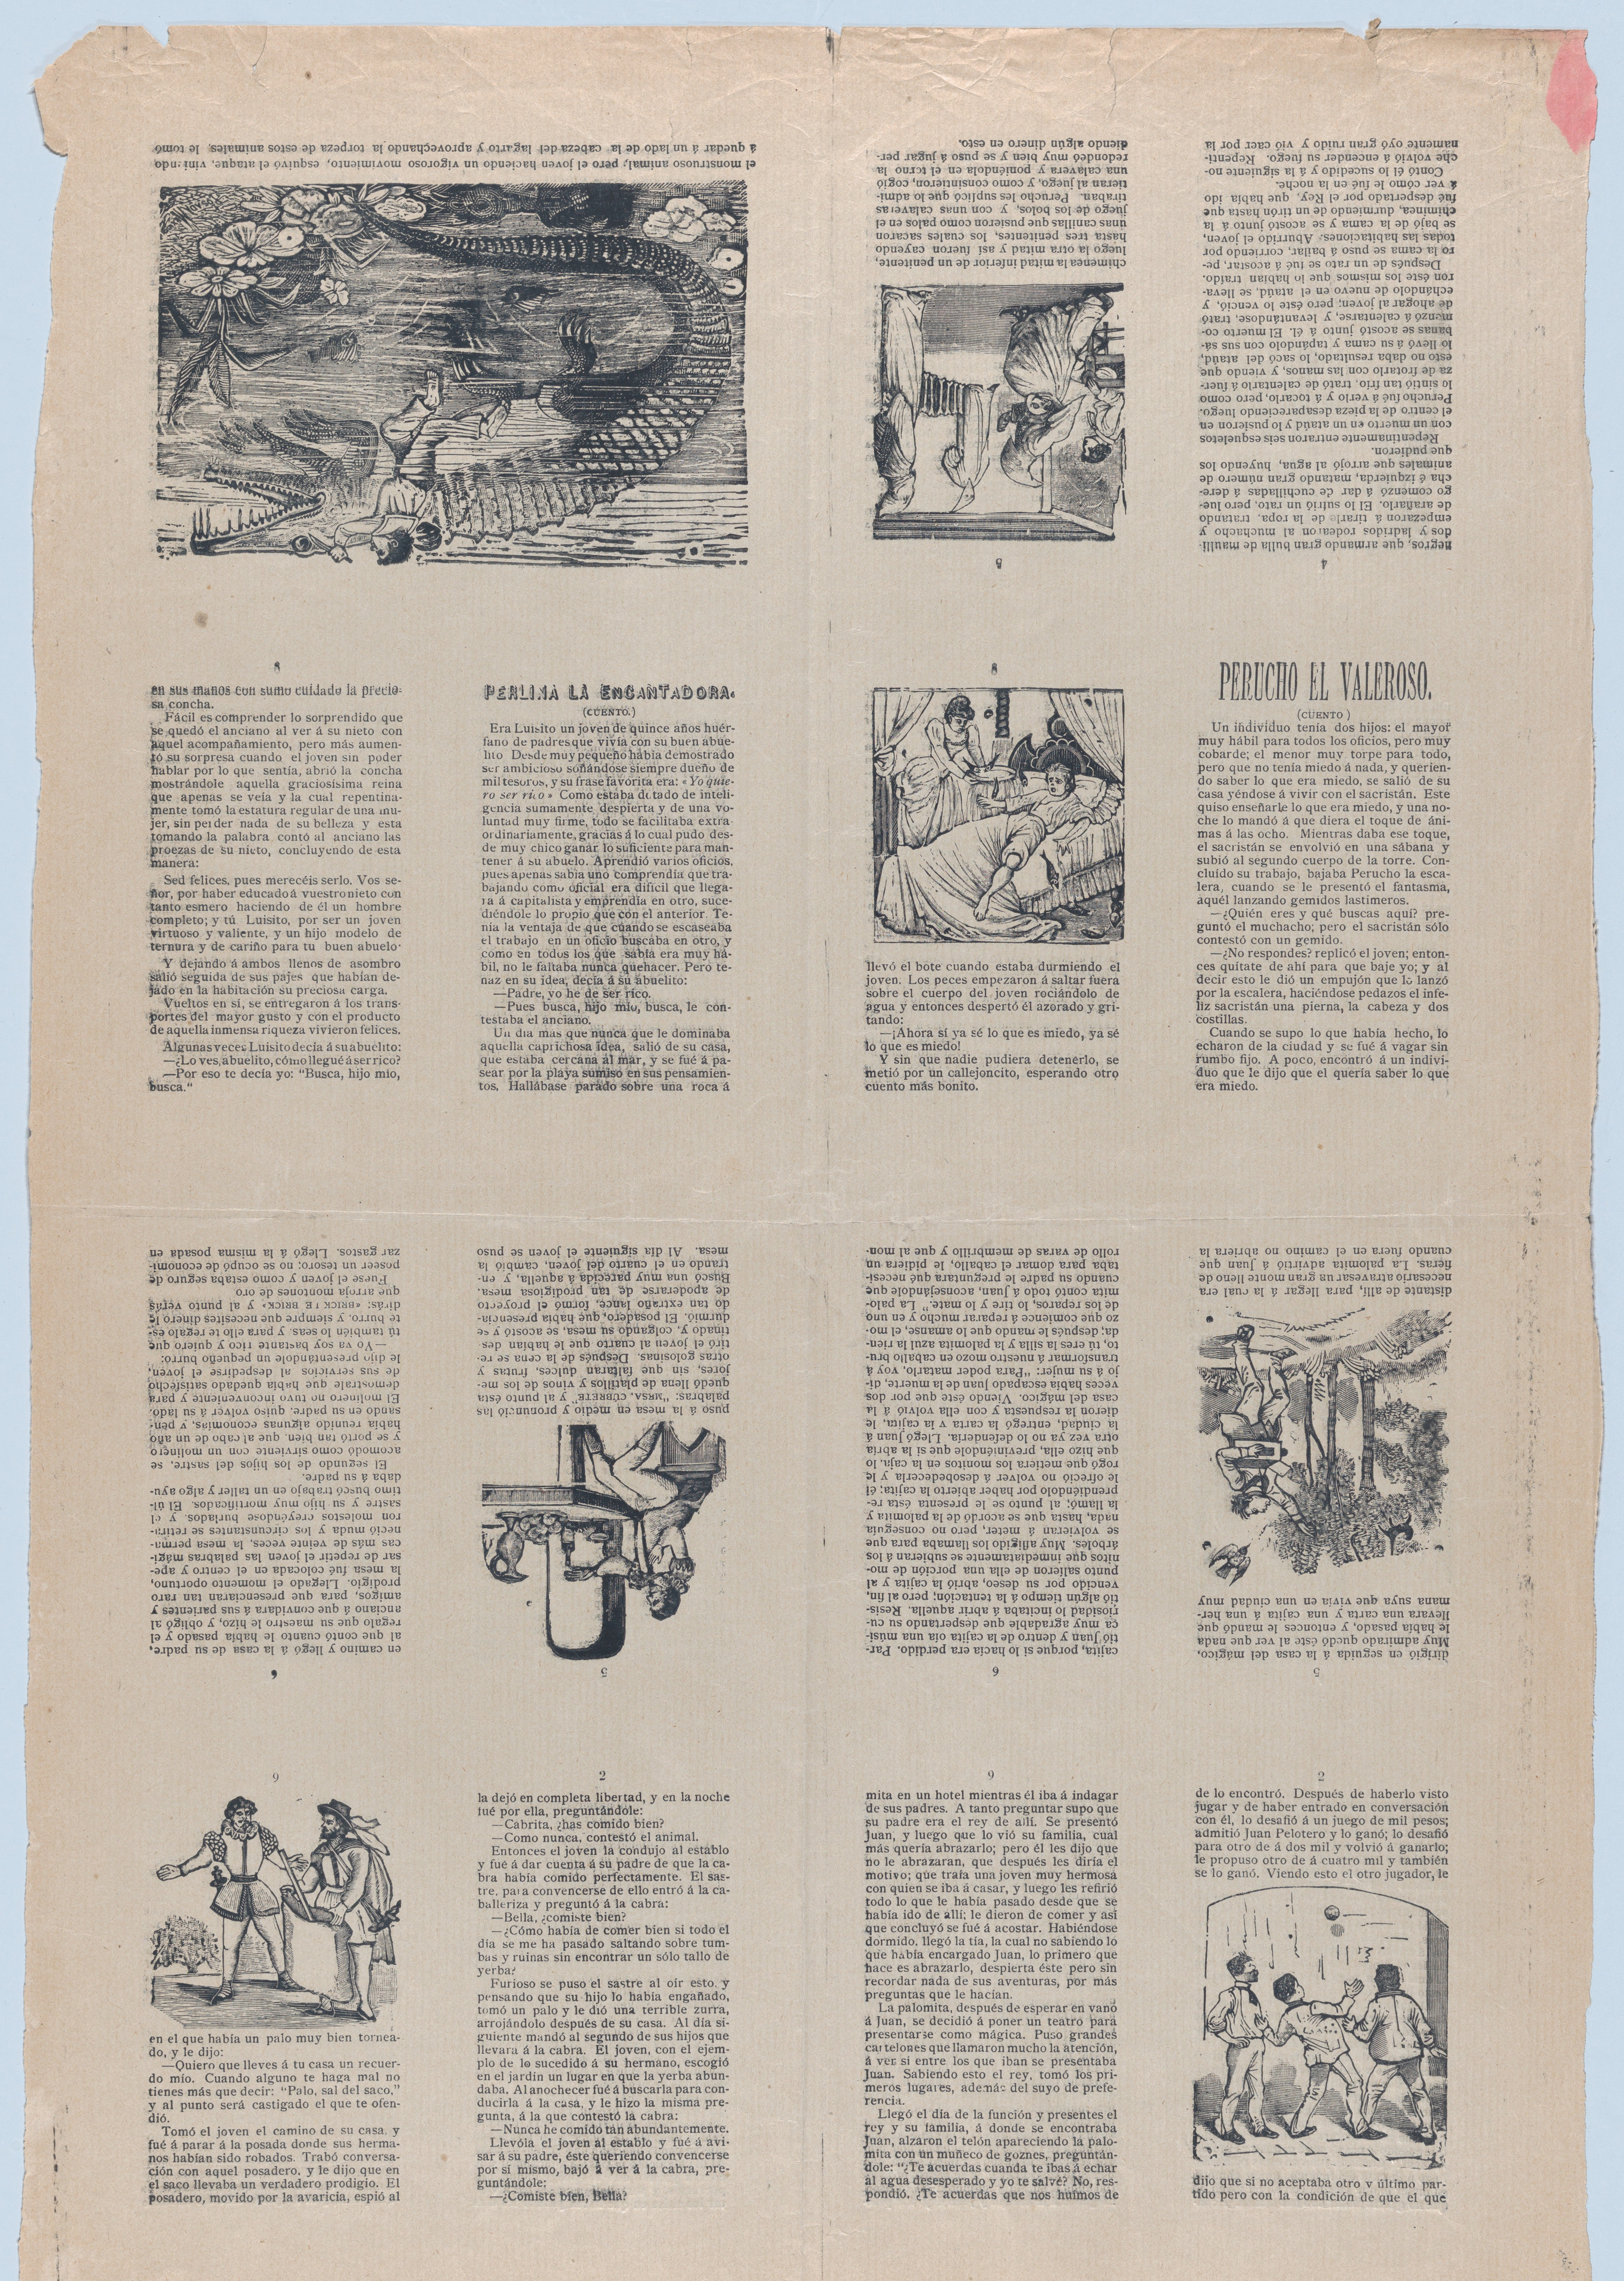 Camino Per La Casa file:an uncut sheet printed on both sides with pages from